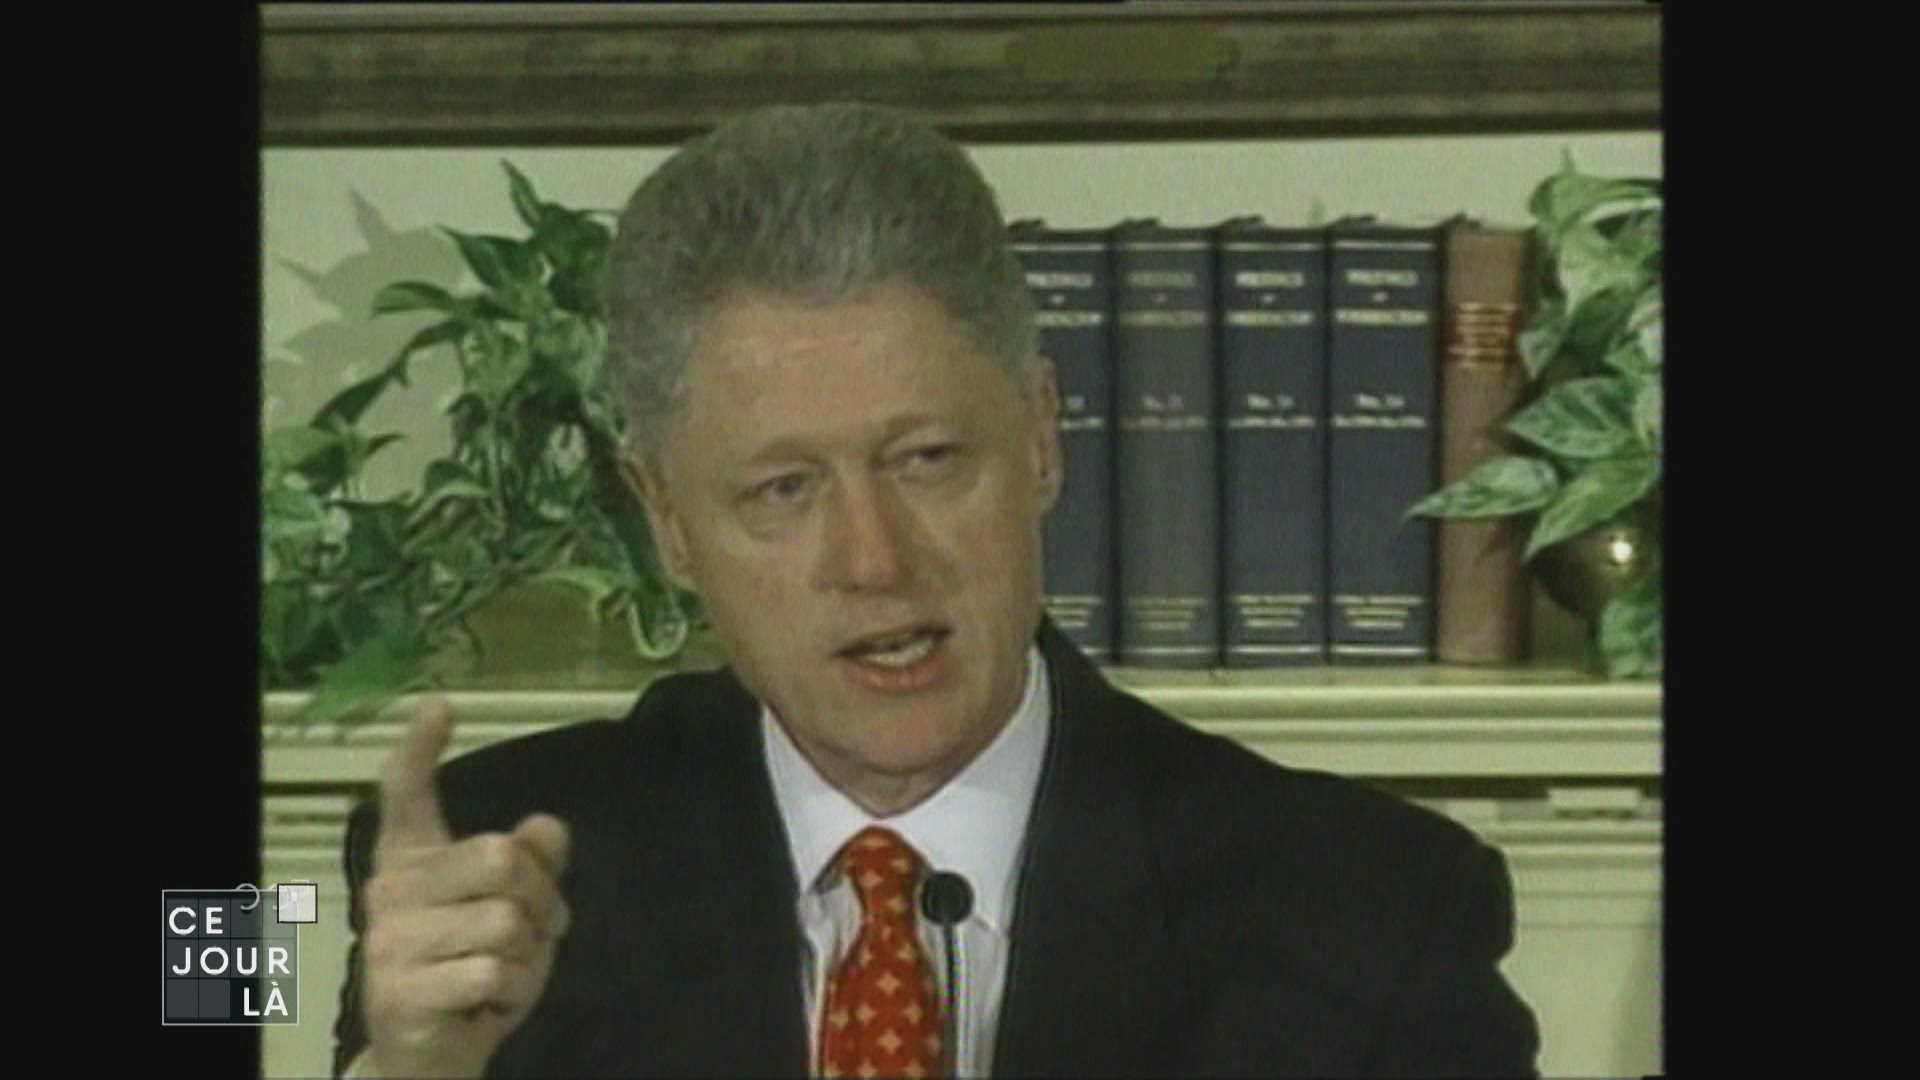 En 1999, Bill Clinton sauvé de l'impeachment par le Sénat